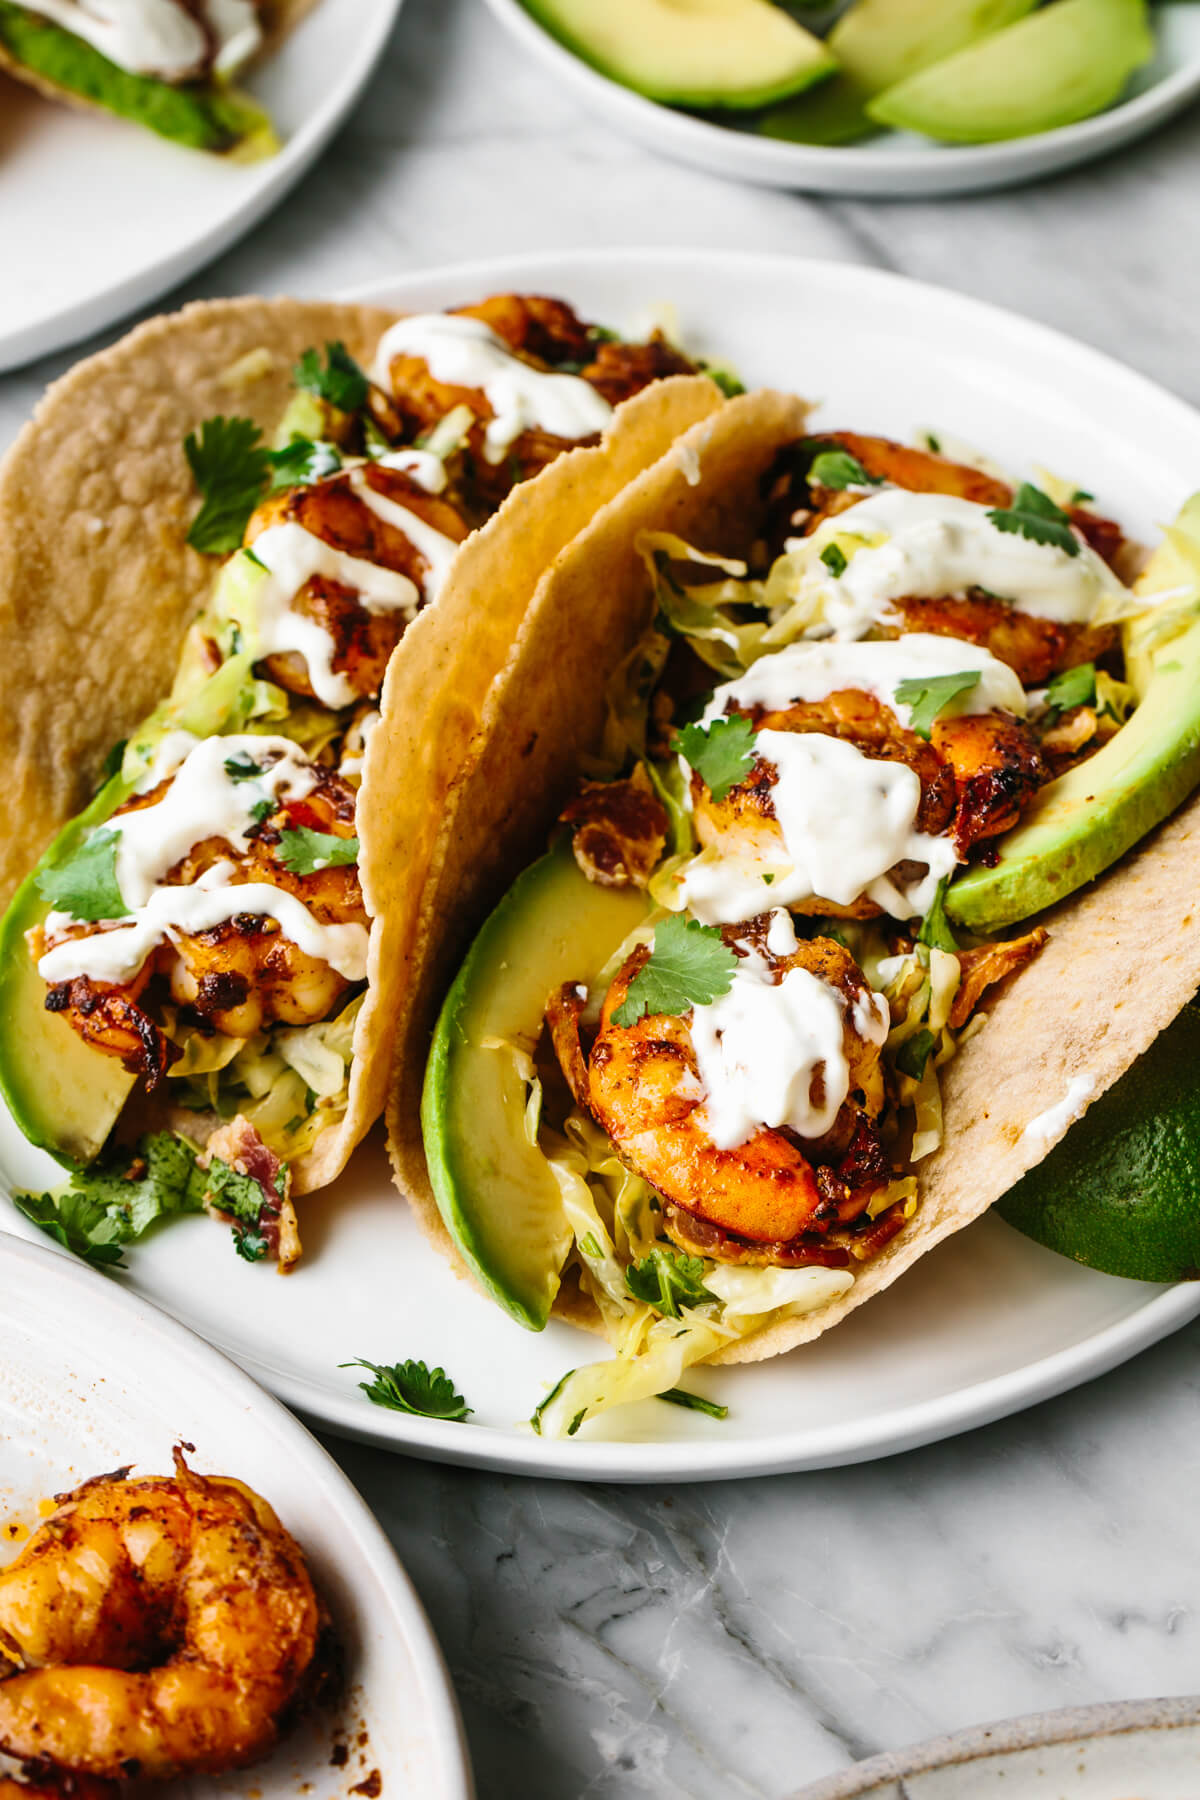 Shrimp tacos on a plate next to avocado